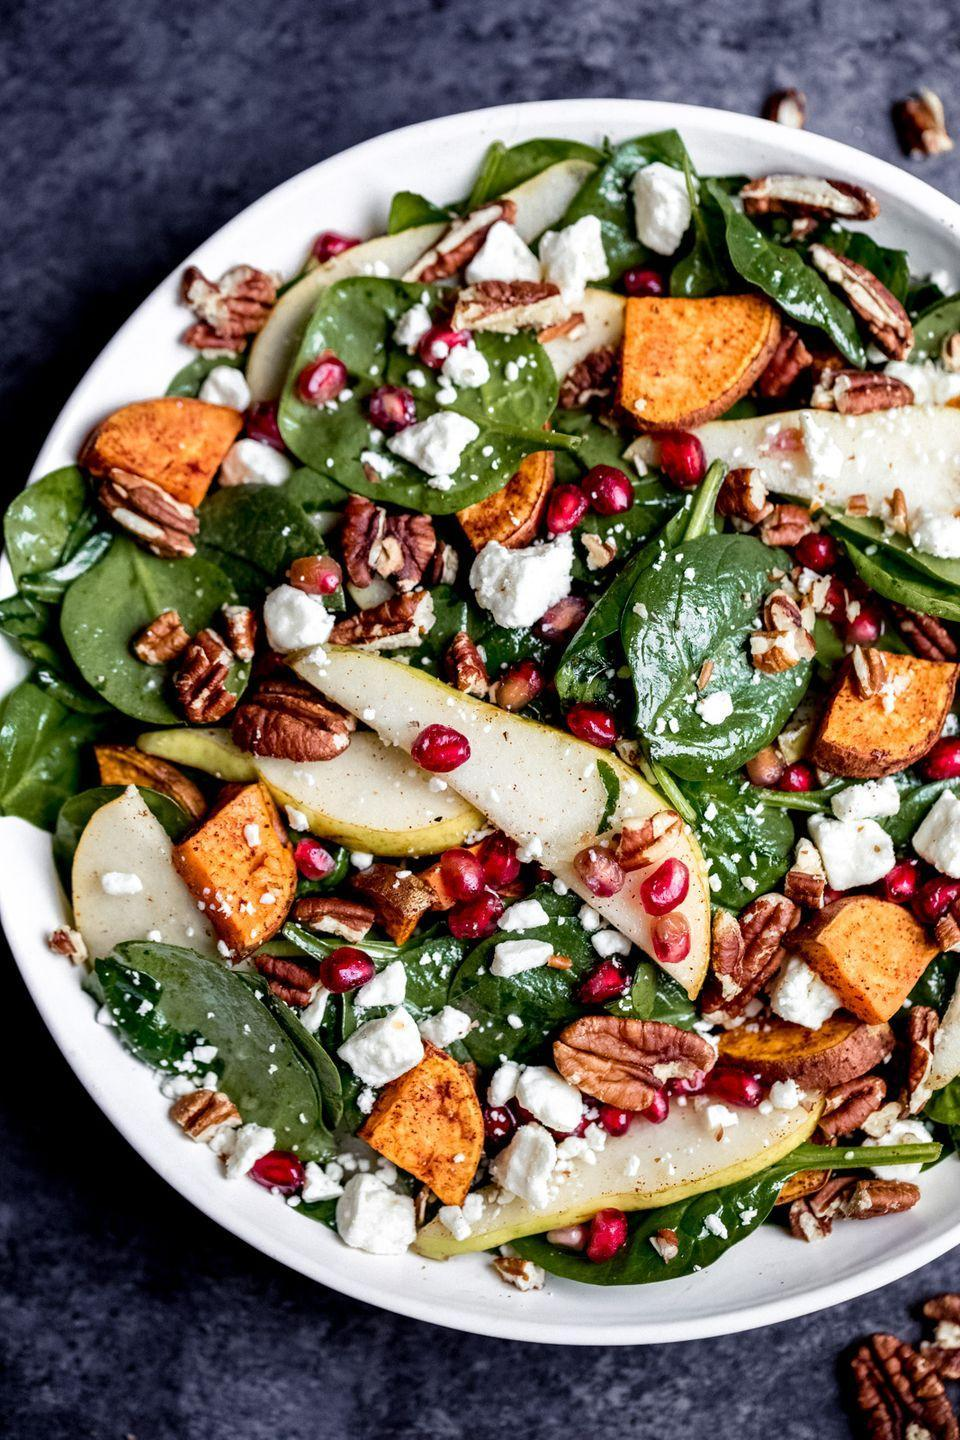 """<p>This salad will be a stunning feature on your New Year's Eve dinner table, especially with the seasonal flavors from the sweet potato and pecans mixed together with the sweet pomegranates and pears.</p><p><strong>Get the recipe at <a href=""""https://www.ambitiouskitchen.com/sweet-potato-pear-pomegranate-spinach-salad/"""" rel=""""nofollow noopener"""" target=""""_blank"""" data-ylk=""""slk:Ambitious Kitchen"""" class=""""link rapid-noclick-resp"""">Ambitious Kitchen</a>.</strong> </p>"""